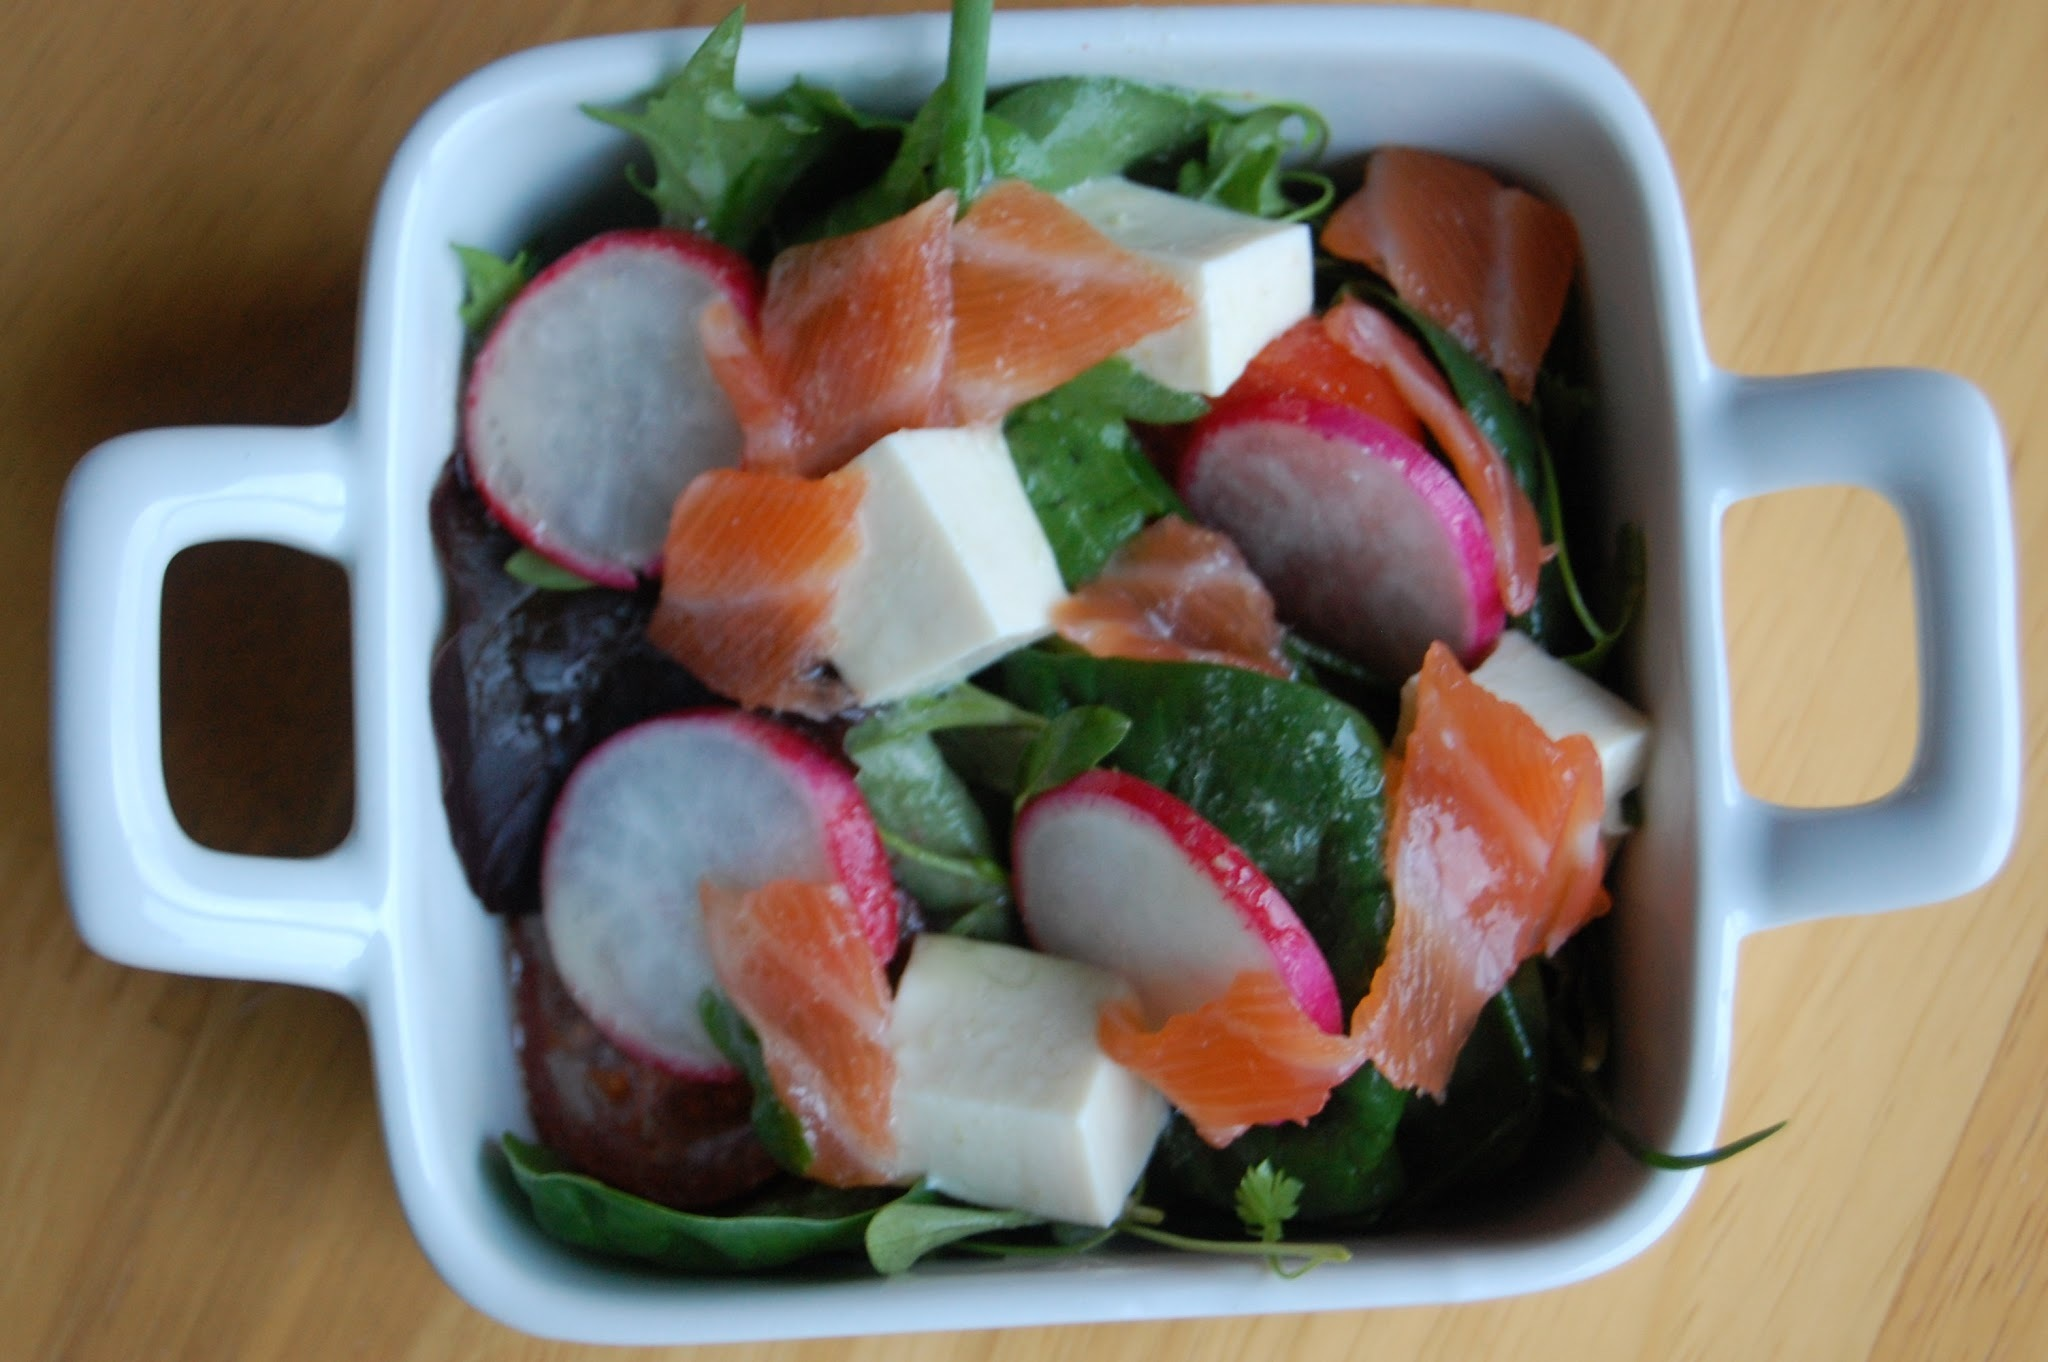 QUICK JAPANESE RECIPE: SMOKED SALMON AND TOFU SALAD WITH WASABI DRESSING